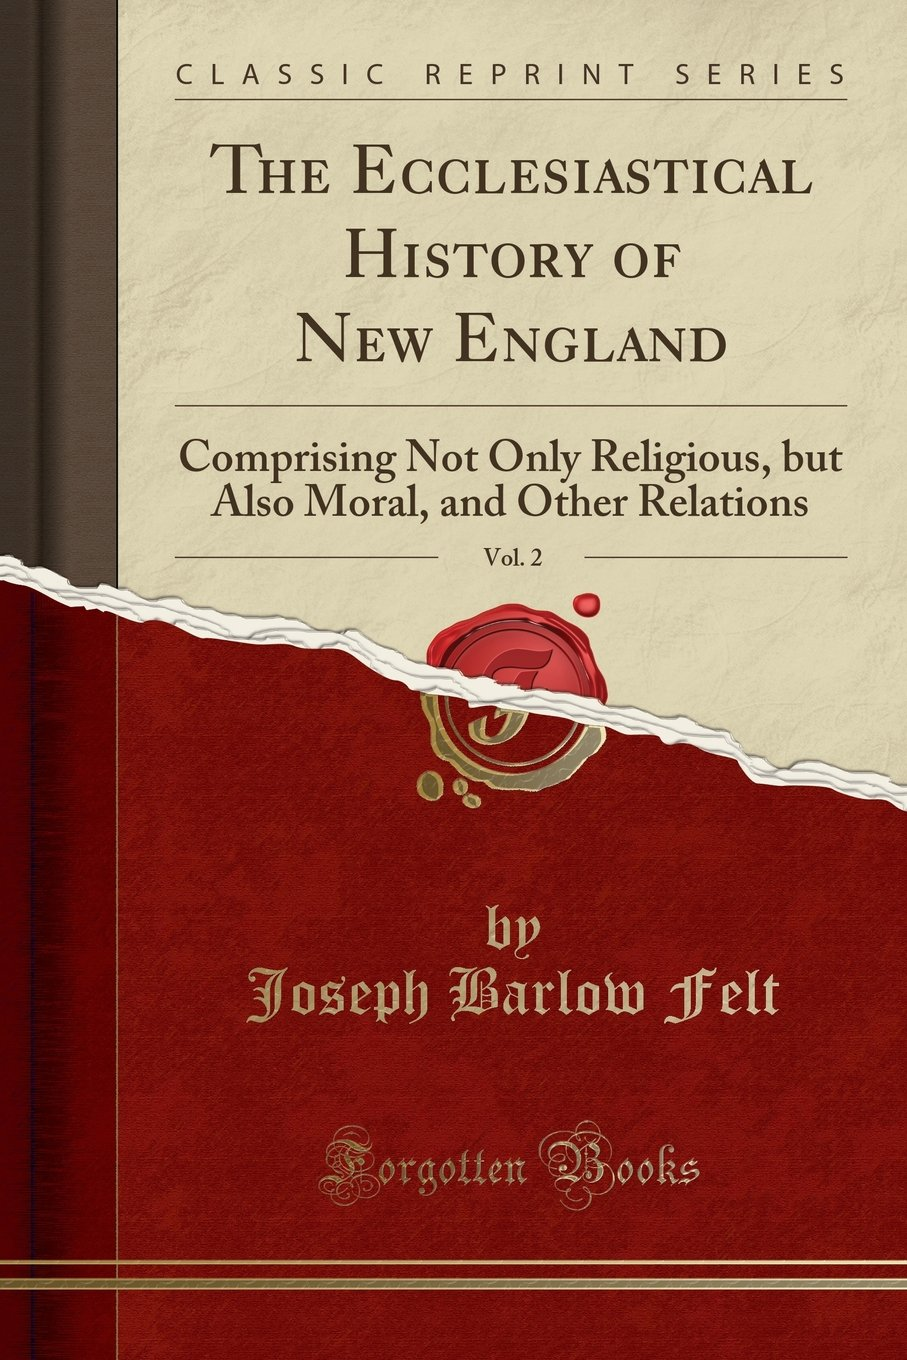 Download The Ecclesiastical History of New England, Vol. 2: Comprising Not Only Religious, but Also Moral, and Other Relations (Classic Reprint) ebook